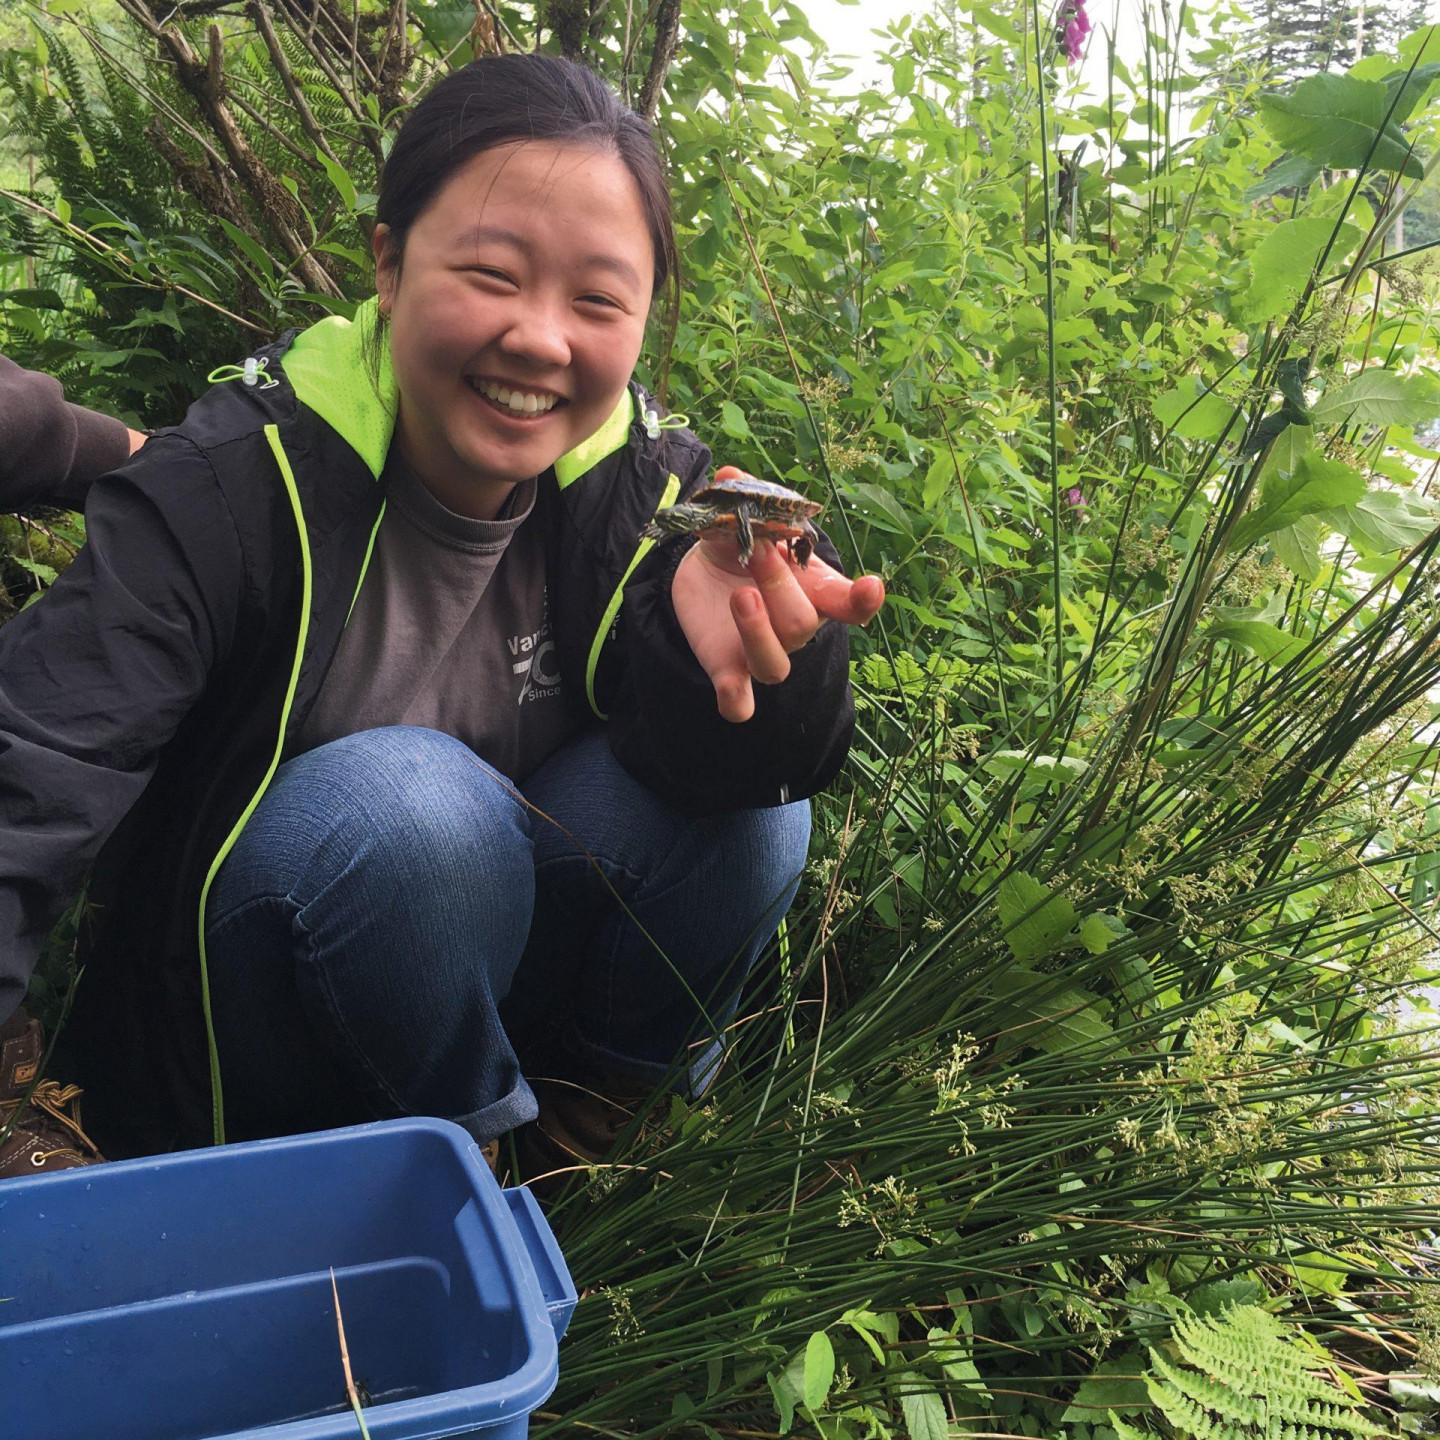 WPC volunteer releasing young western painted turtles in BC. Photo: Lance Woolaver.